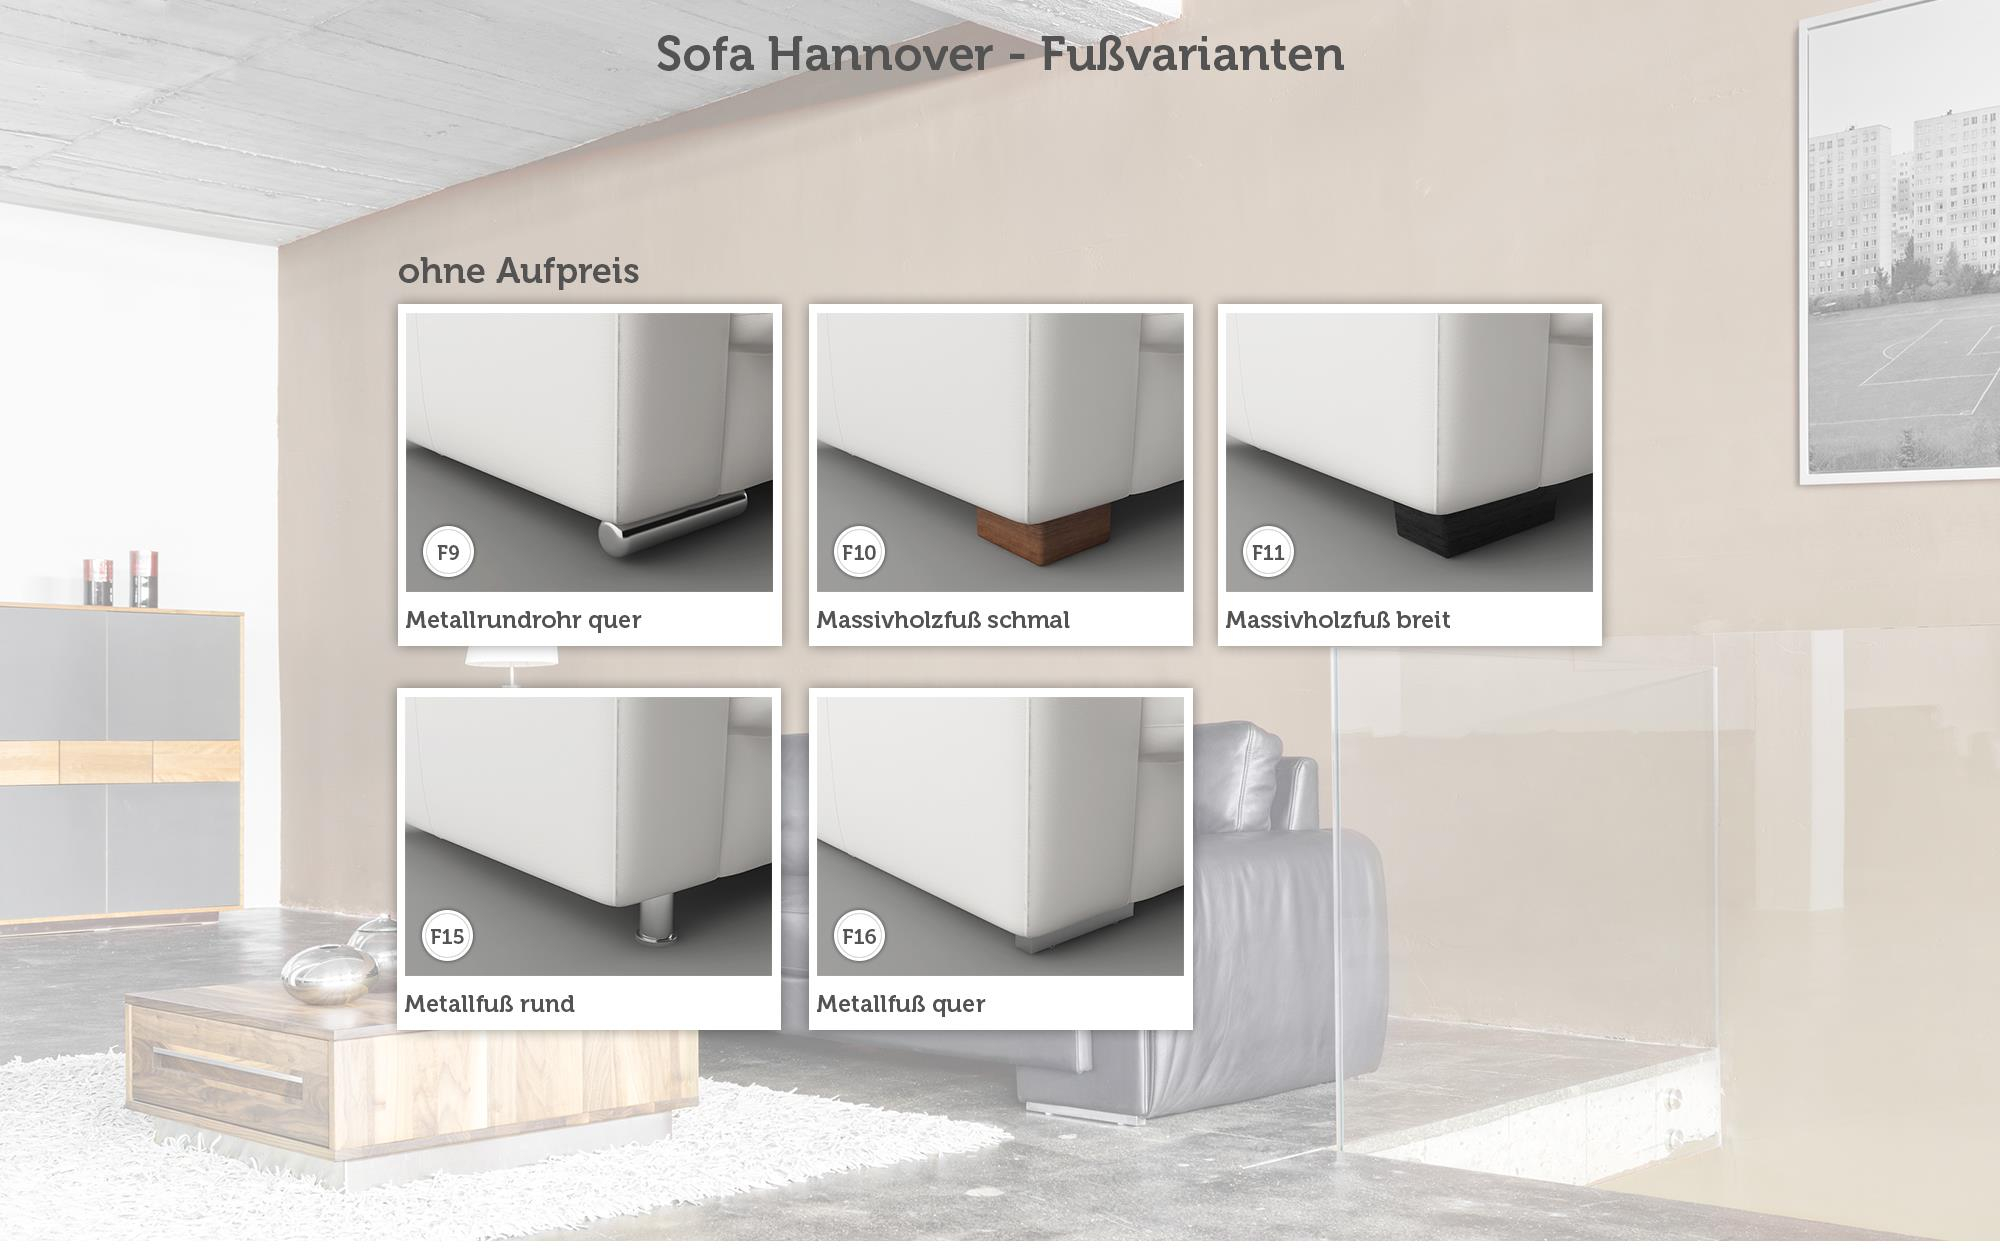 sofa kaufen hannover joyous sofa hannover sofas brostuhl garbsen langenhagen gnstig ebay kaufen. Black Bedroom Furniture Sets. Home Design Ideas